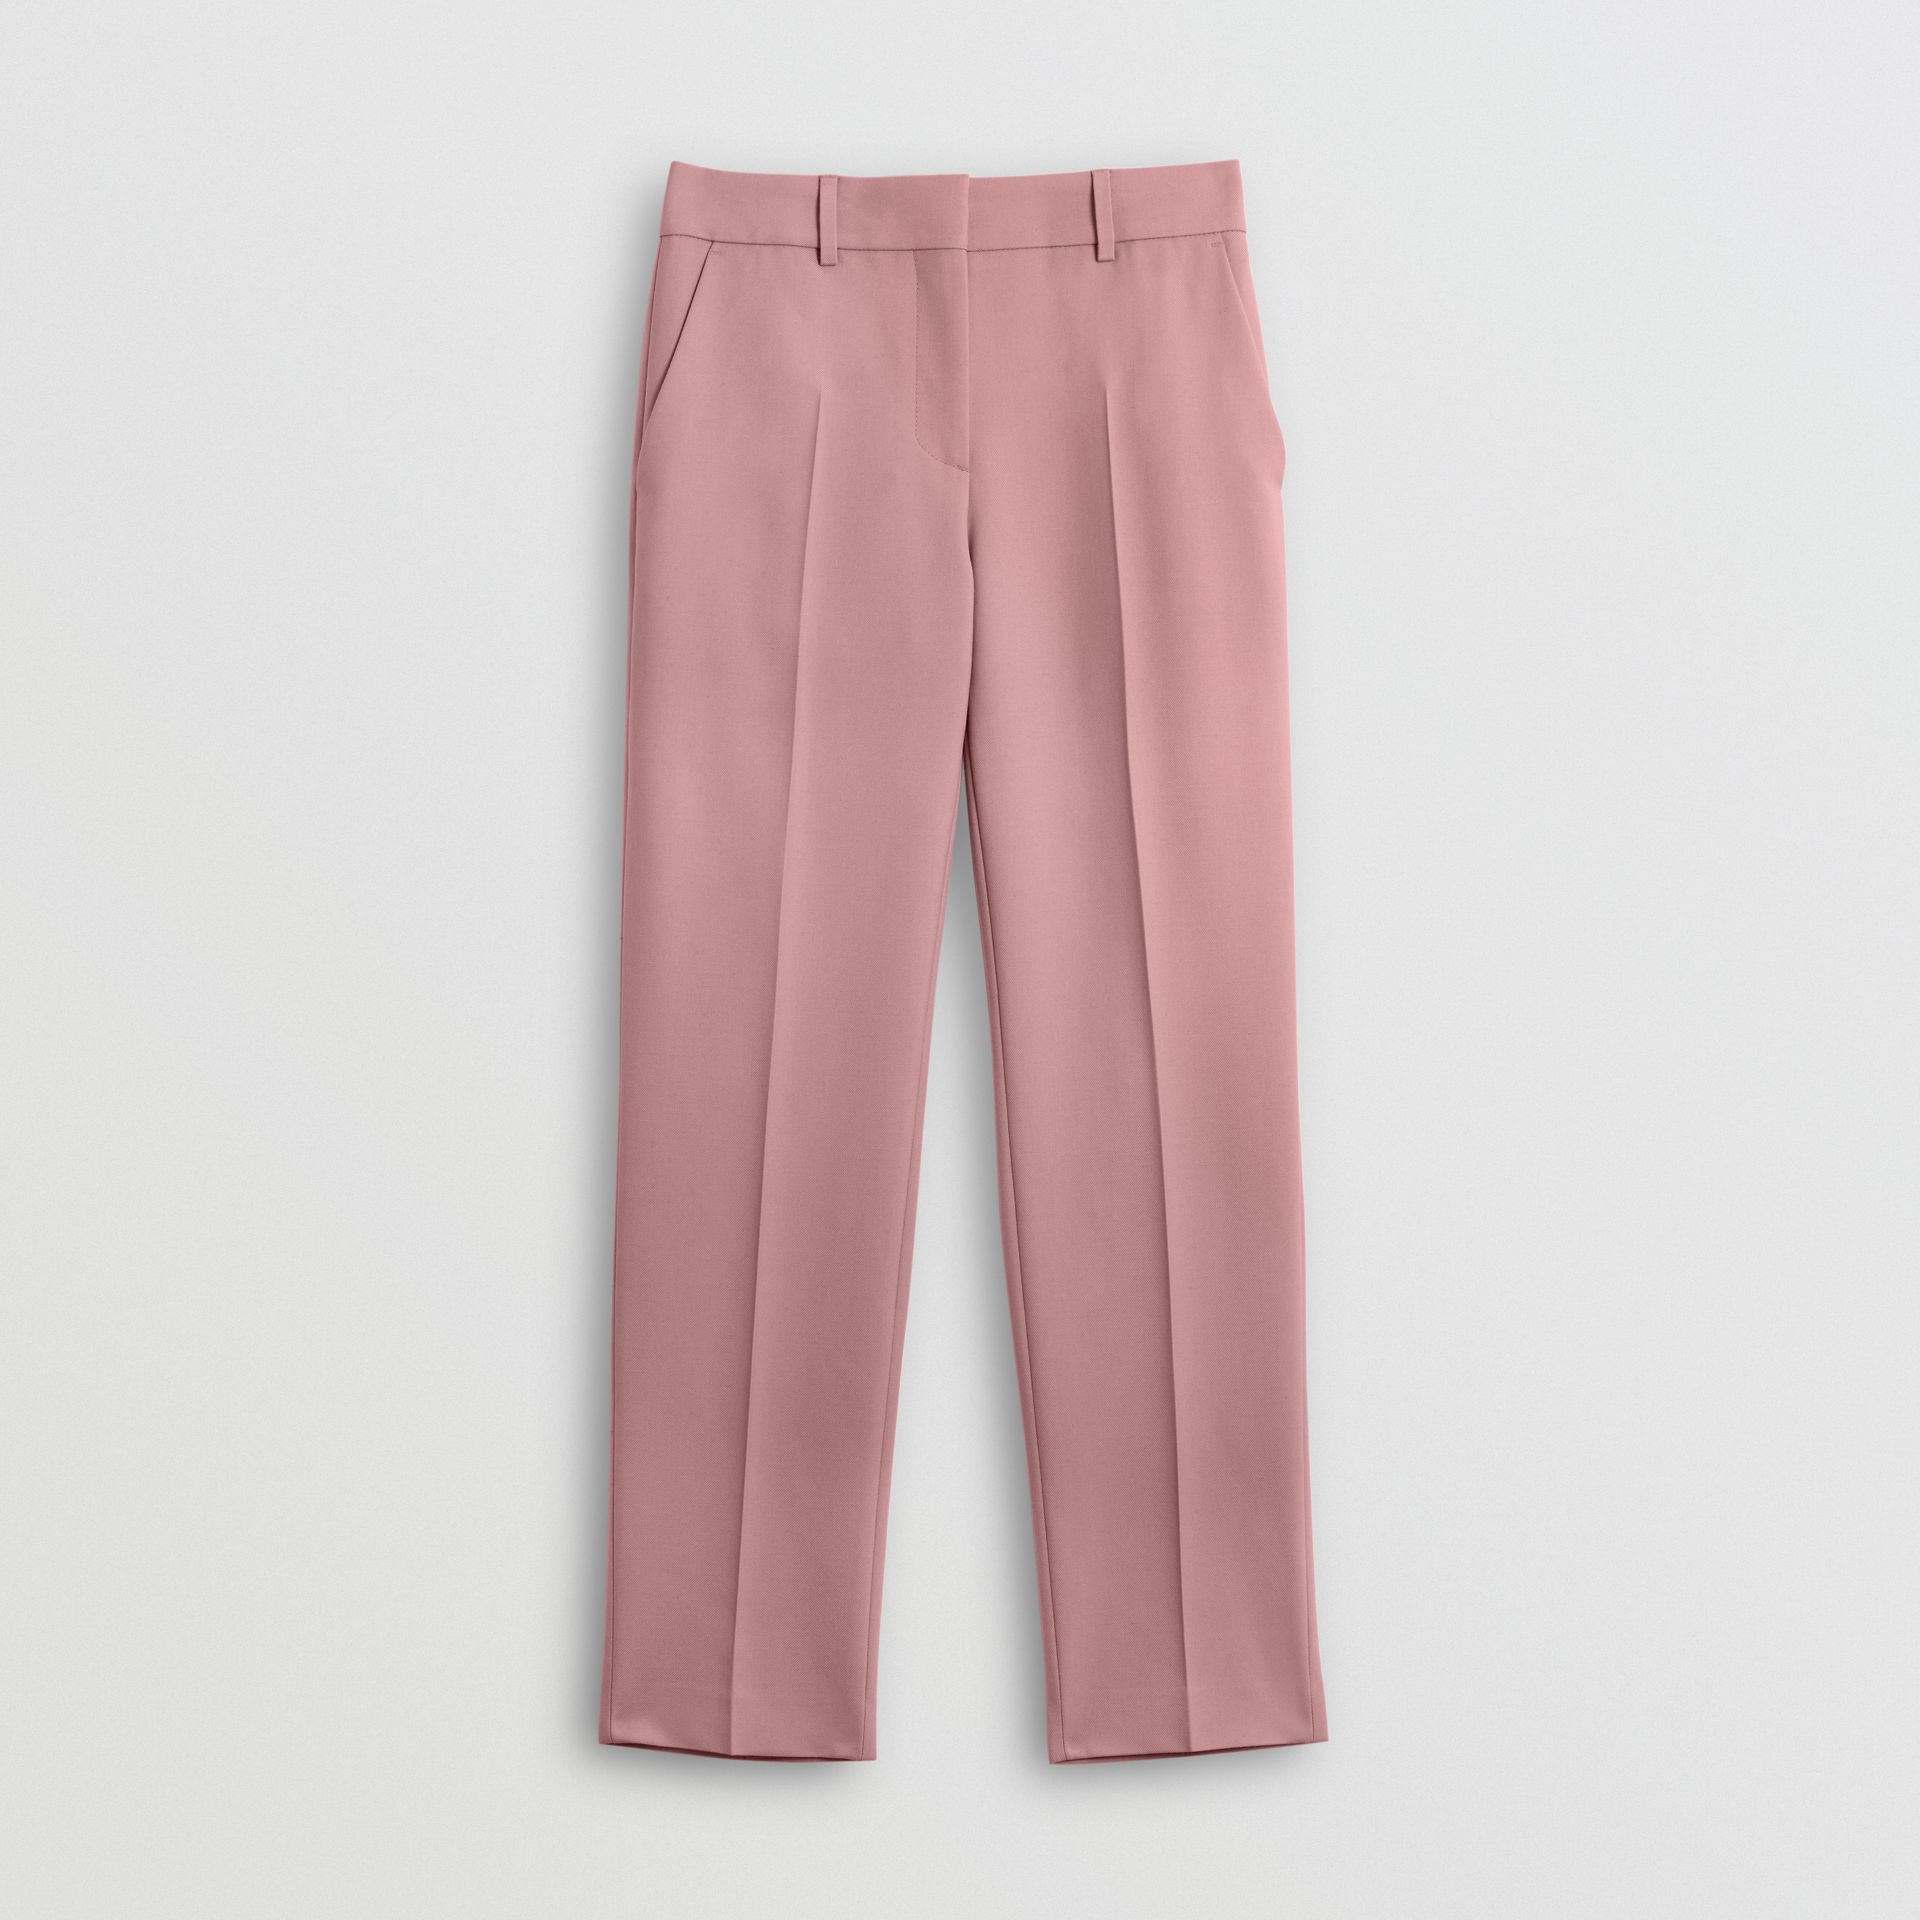 Straight Fit Wool Blend Tailored Trousers in Chalk Pink - Women | Burberry - gallery image 3